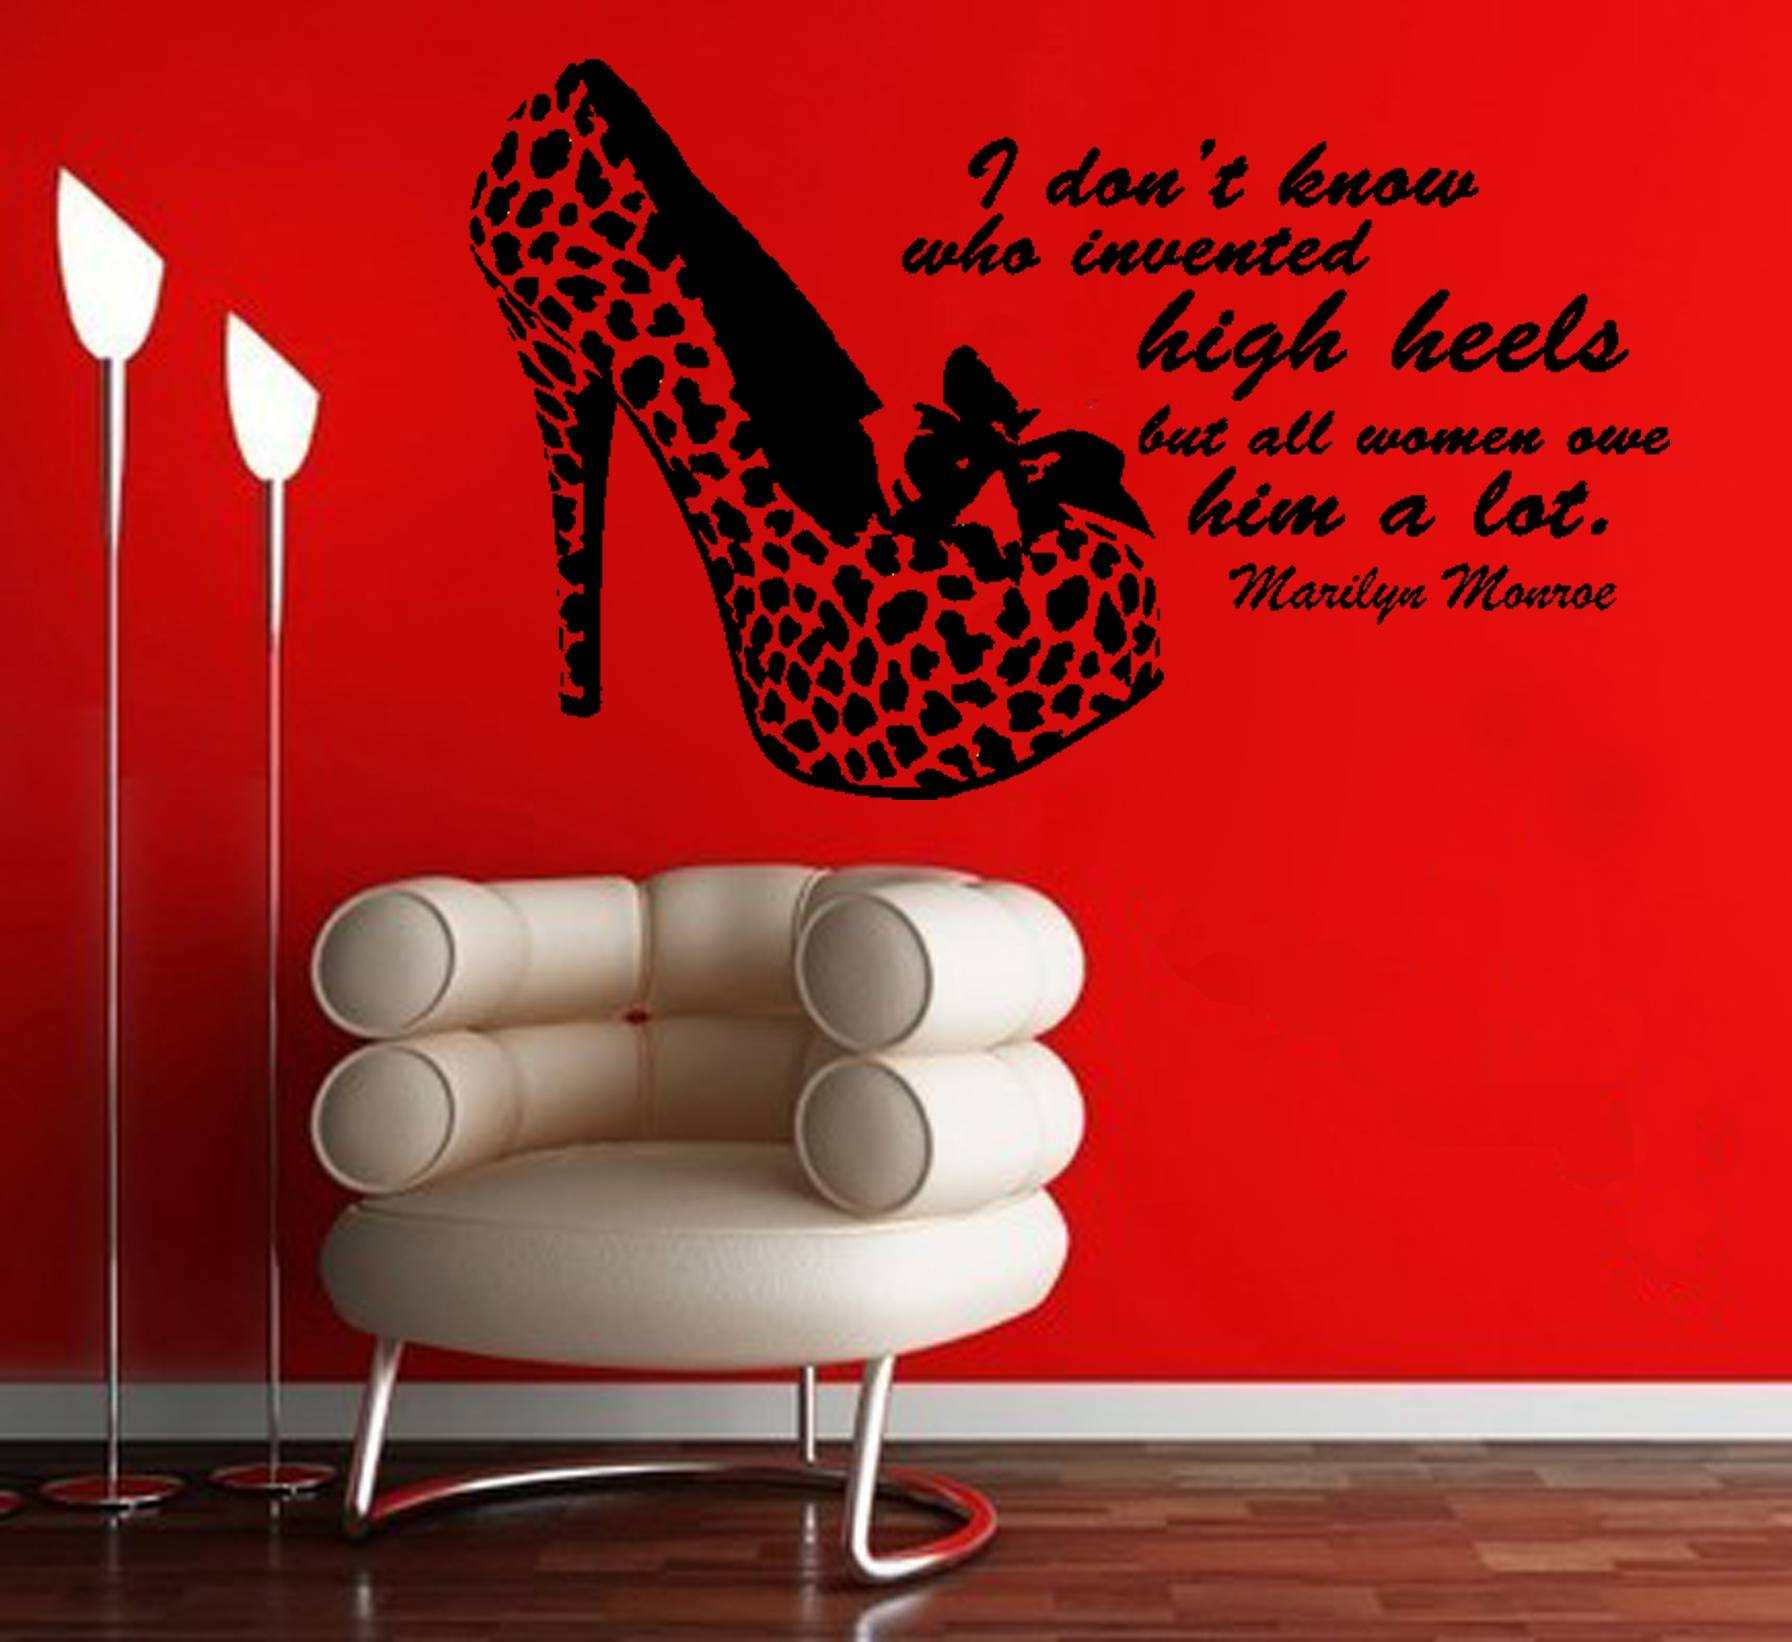 Trendy Marilyn Monroe Quote Decal High Heels Wall Sticker I Do Not With Regard To 2018 Marilyn Monroe Wall Art Quotes (View 20 of 25)